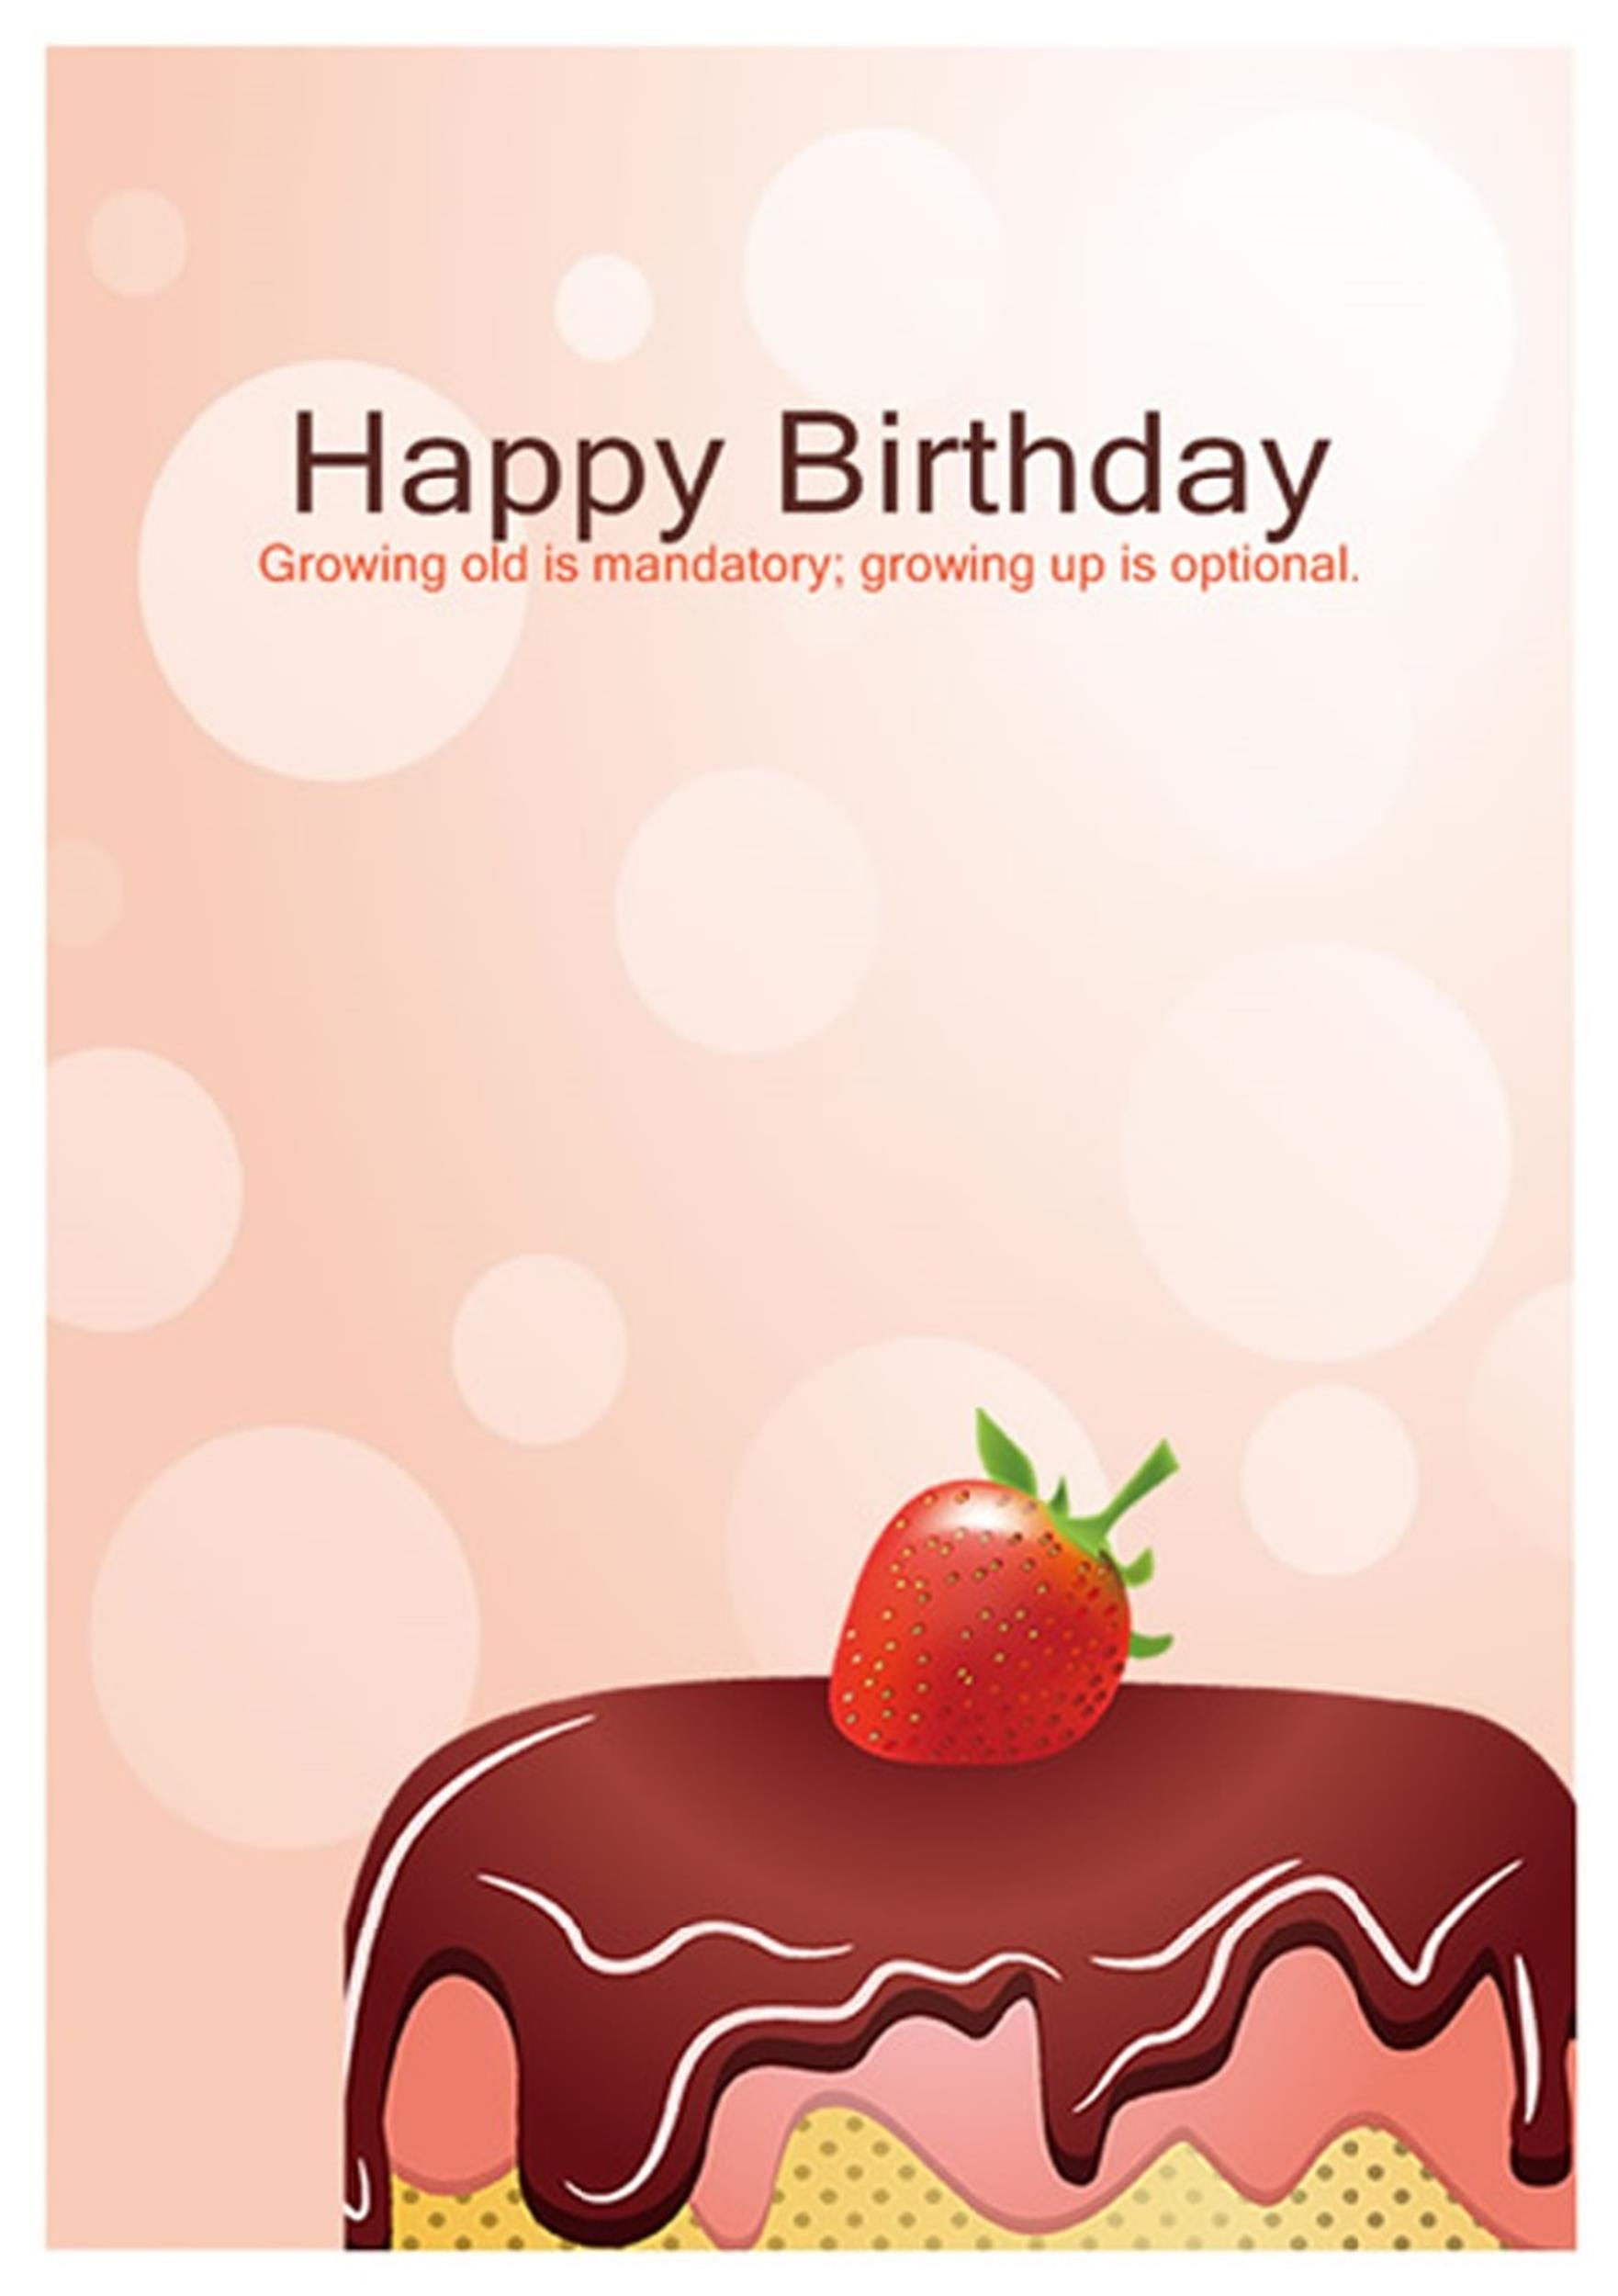 Free Birthday Card Templates  Birthday Wishes Templates Word